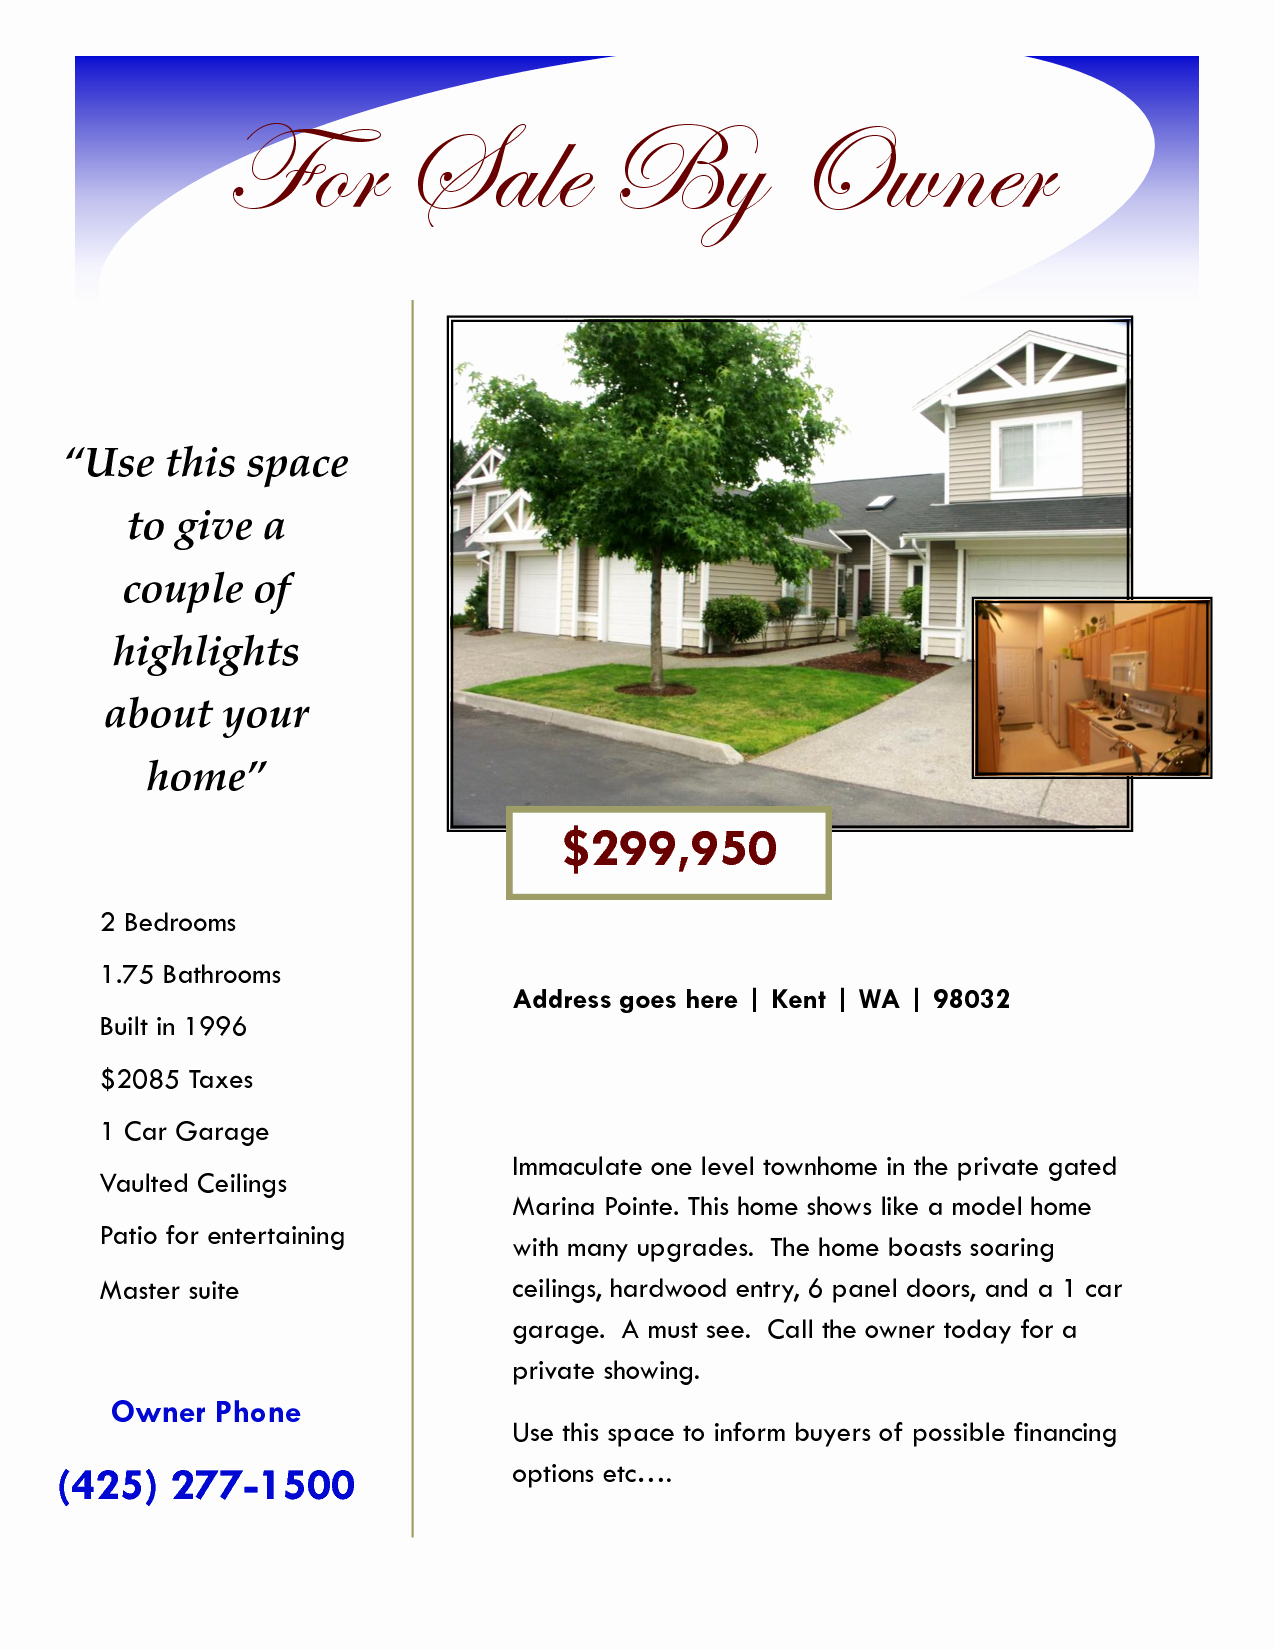 Home for Sale Flyer Awesome House for Sale Flyer Google Search